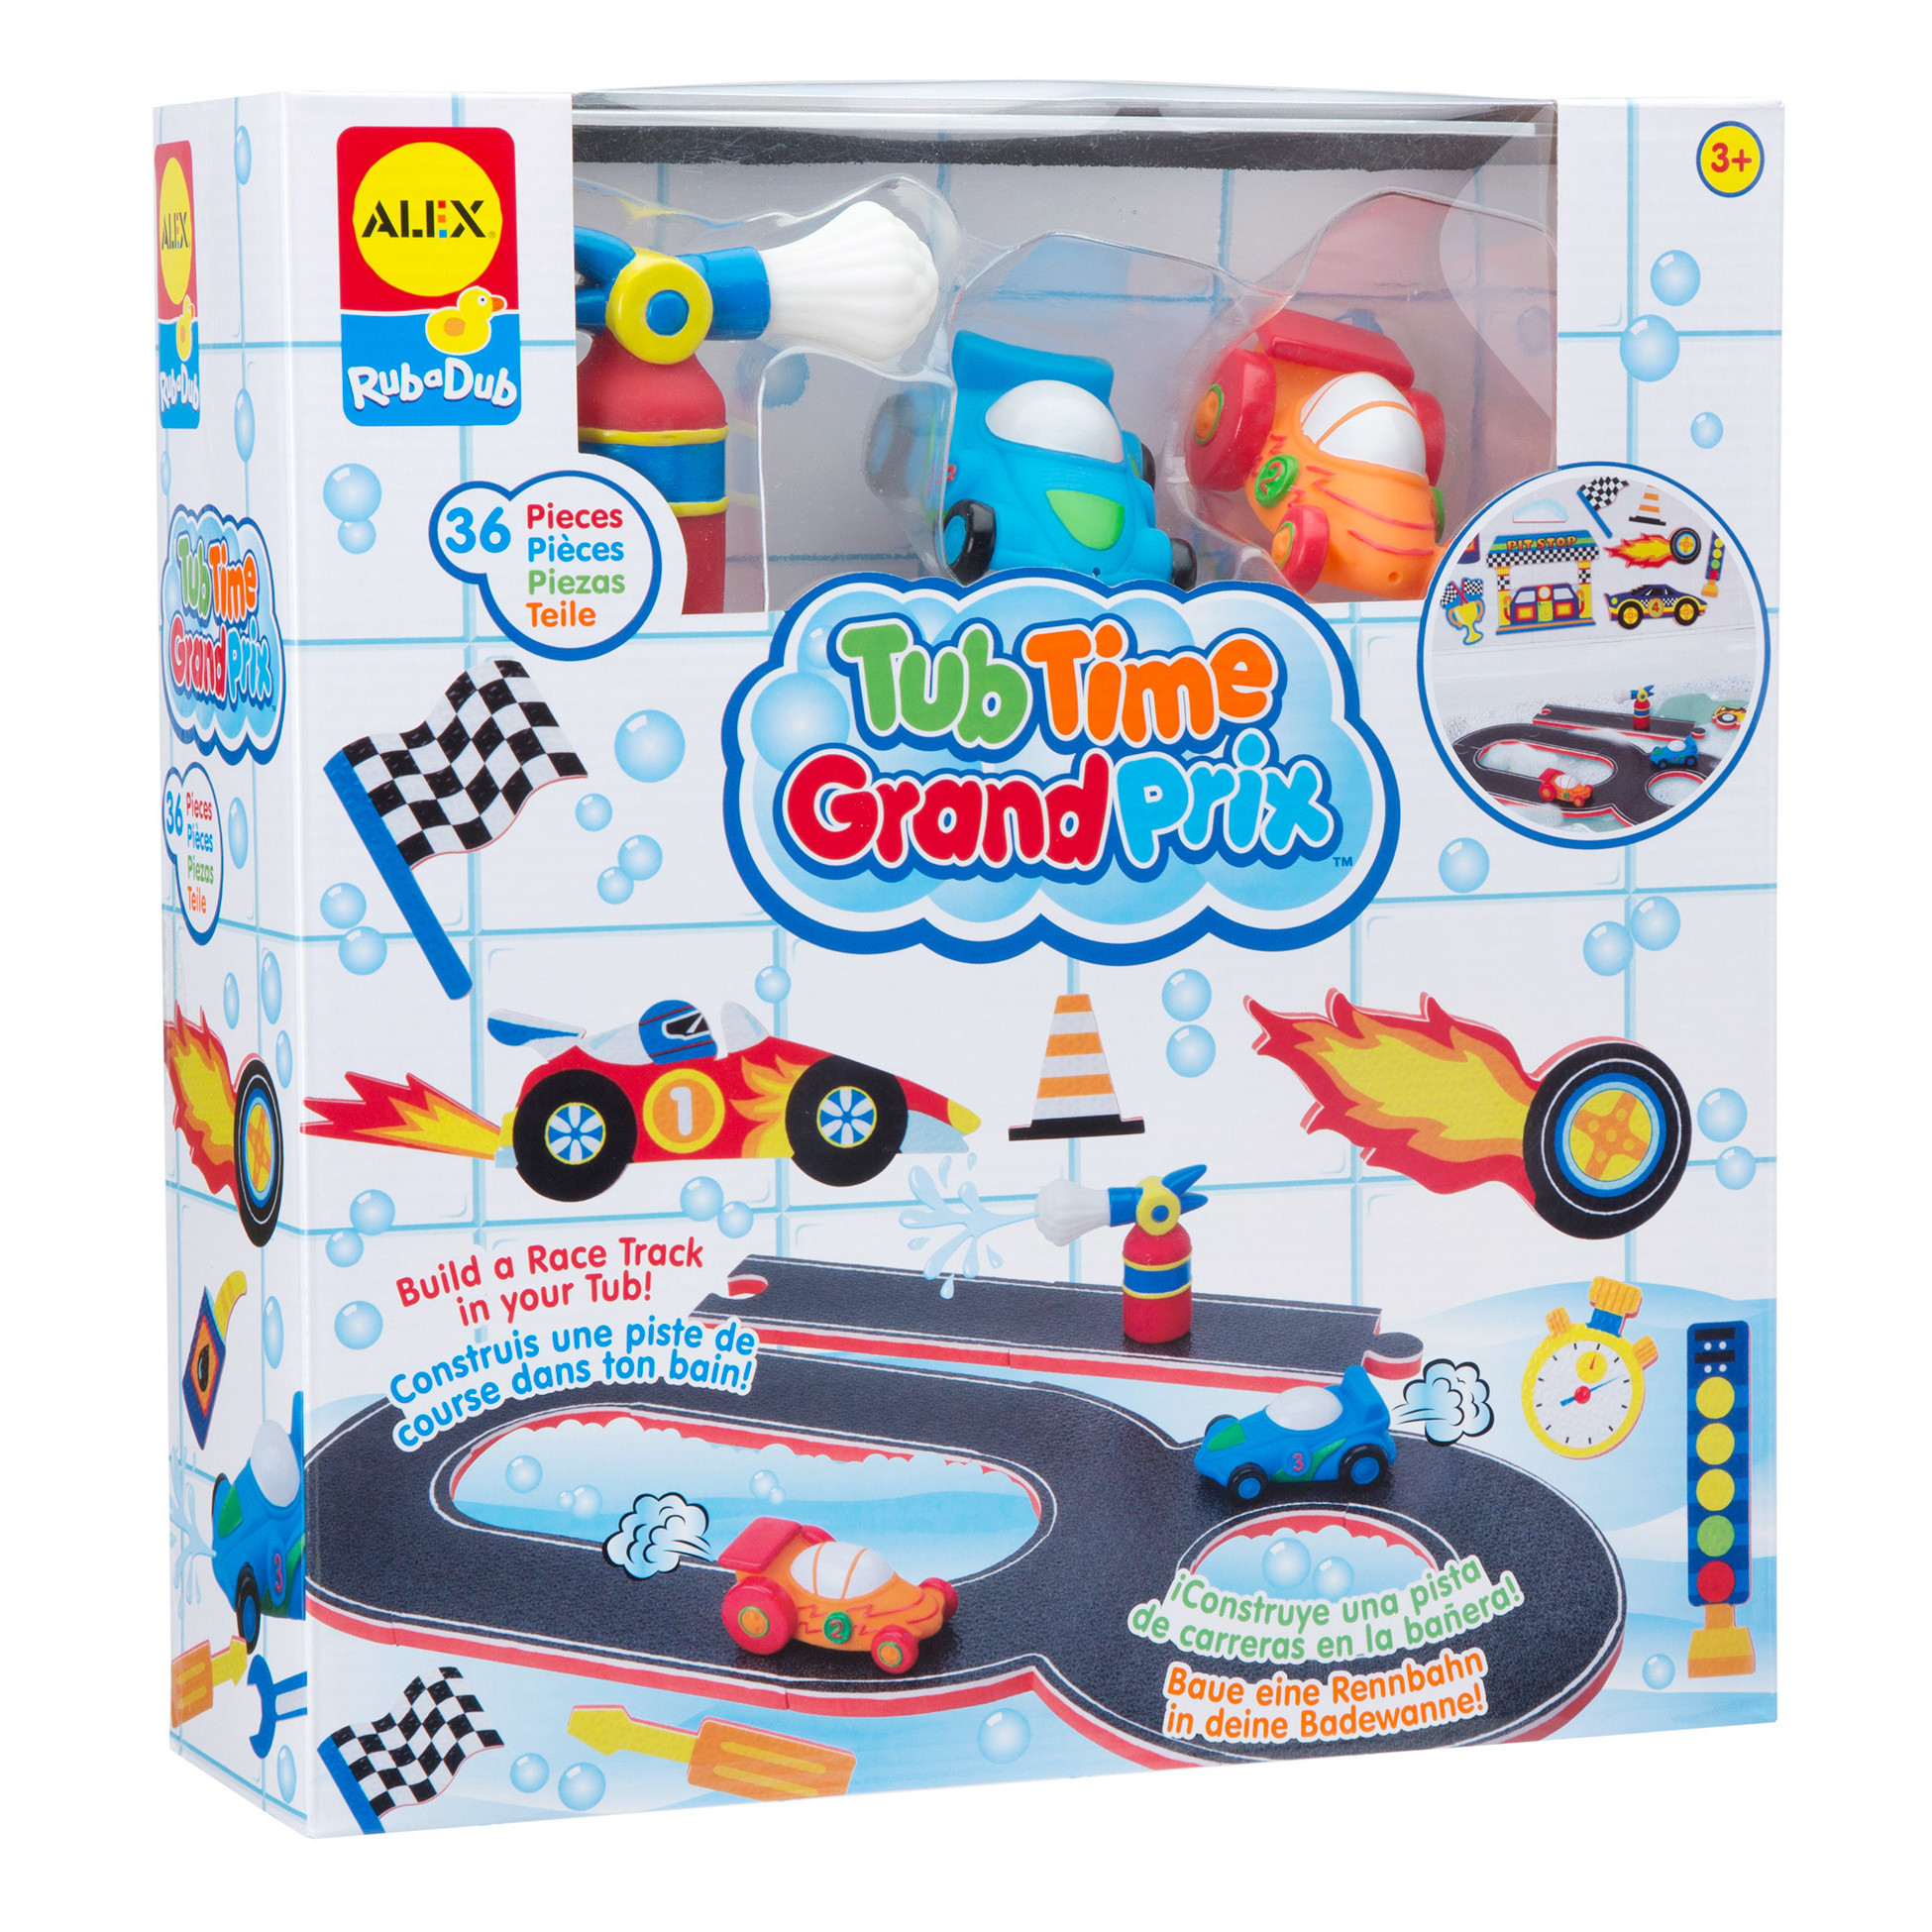 Baby Badewanne Toys R Us Alex Toys Rub A Dub Tub Time Grand Prix